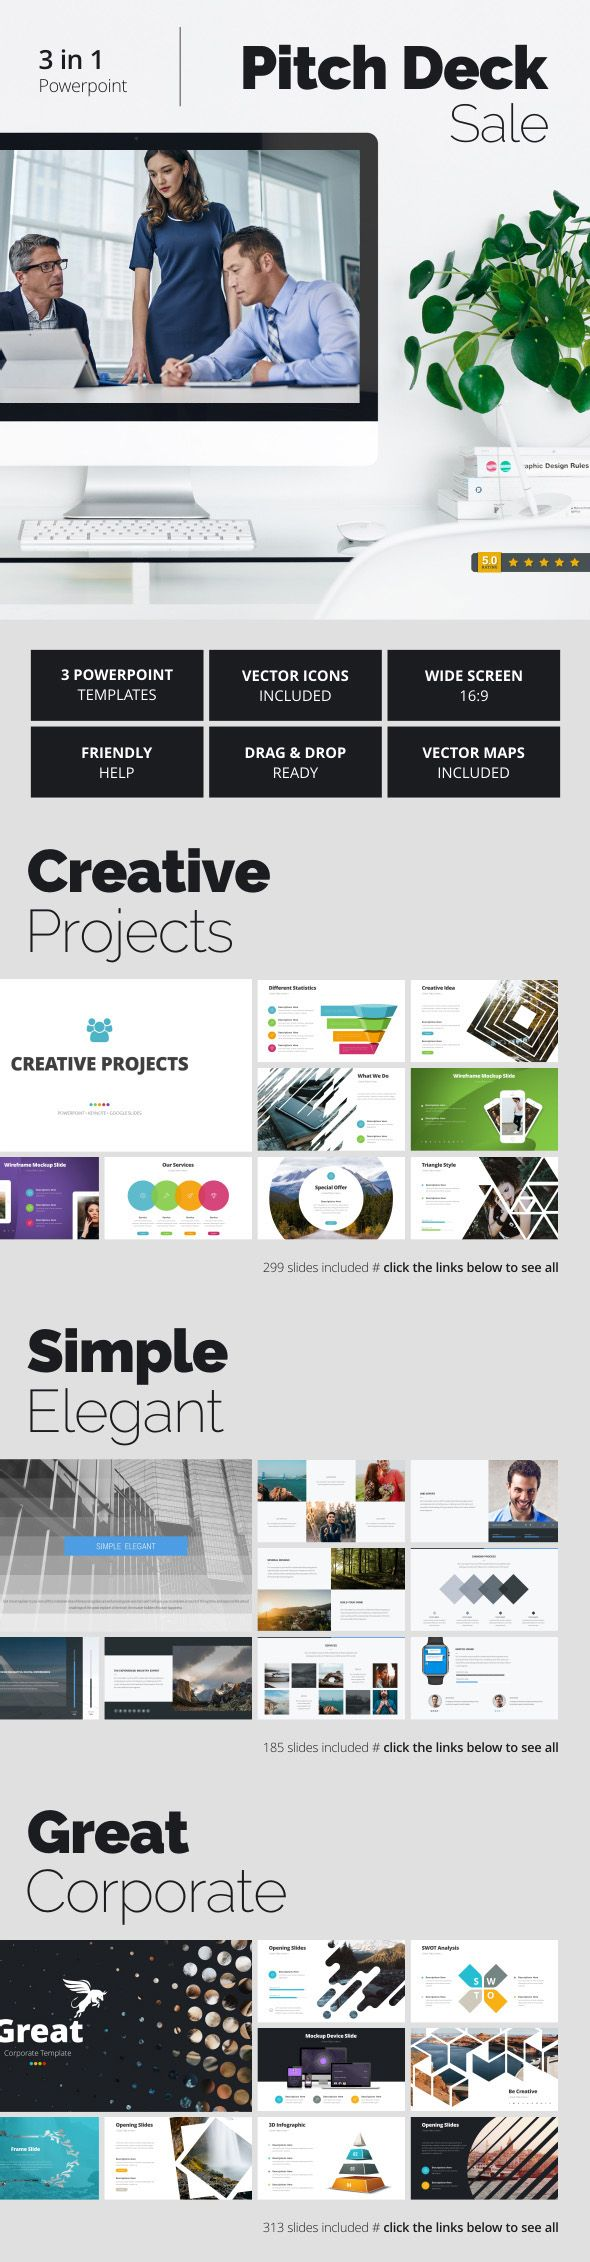 389 best Powerpoint Templates images on Pinterest | Presentation ...